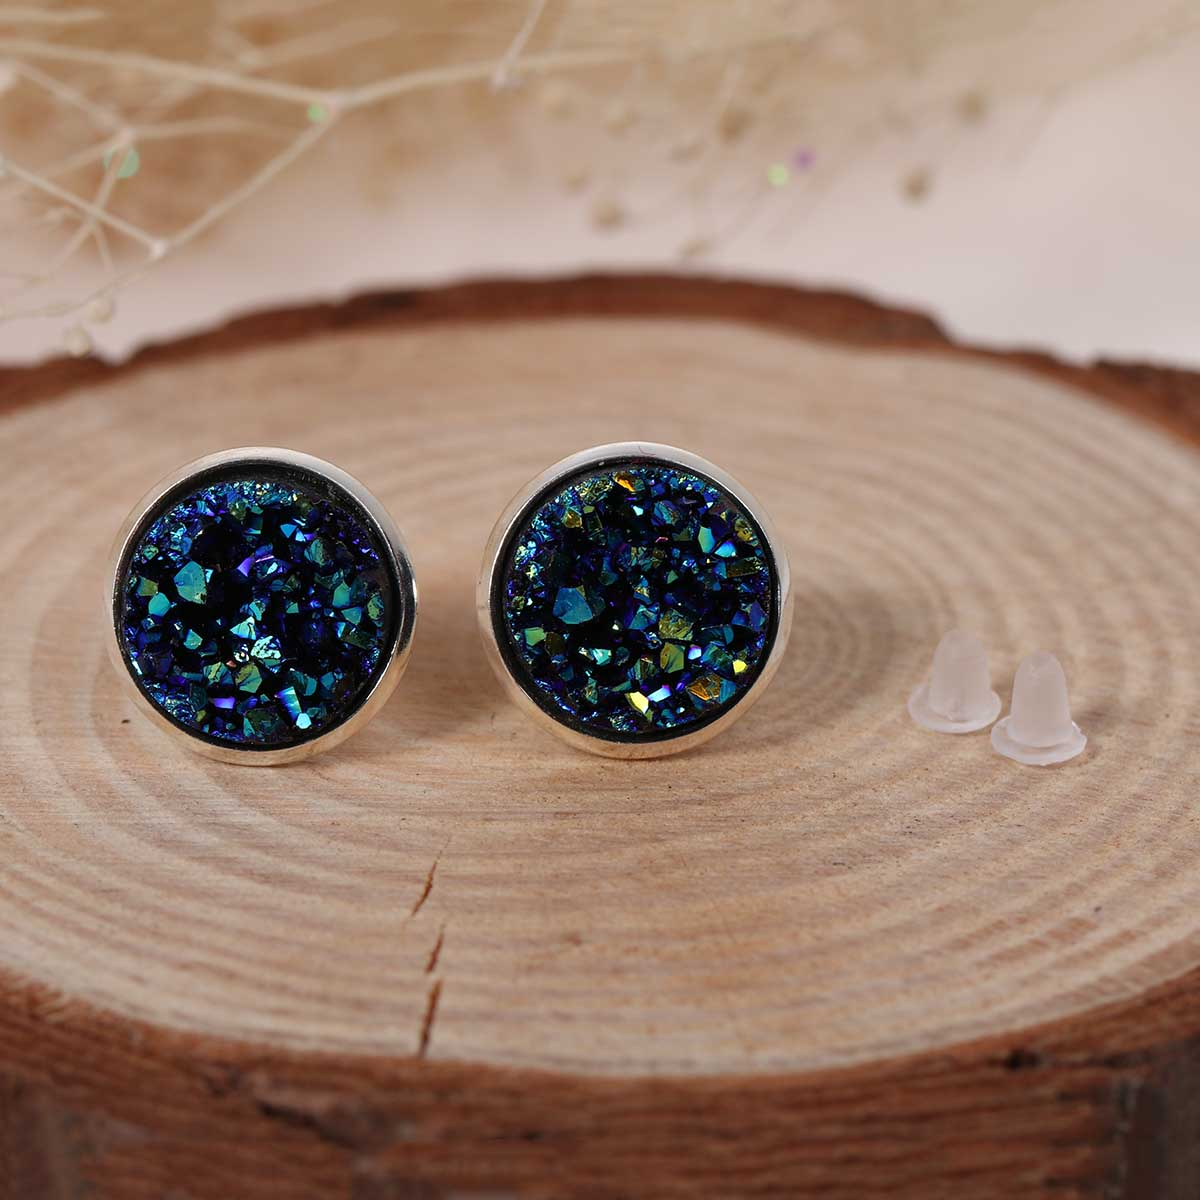 Doreen Box Copper Ear Post Stud Earrings Round Royal Blue AB Color W Stoppers Fashion Jewelry